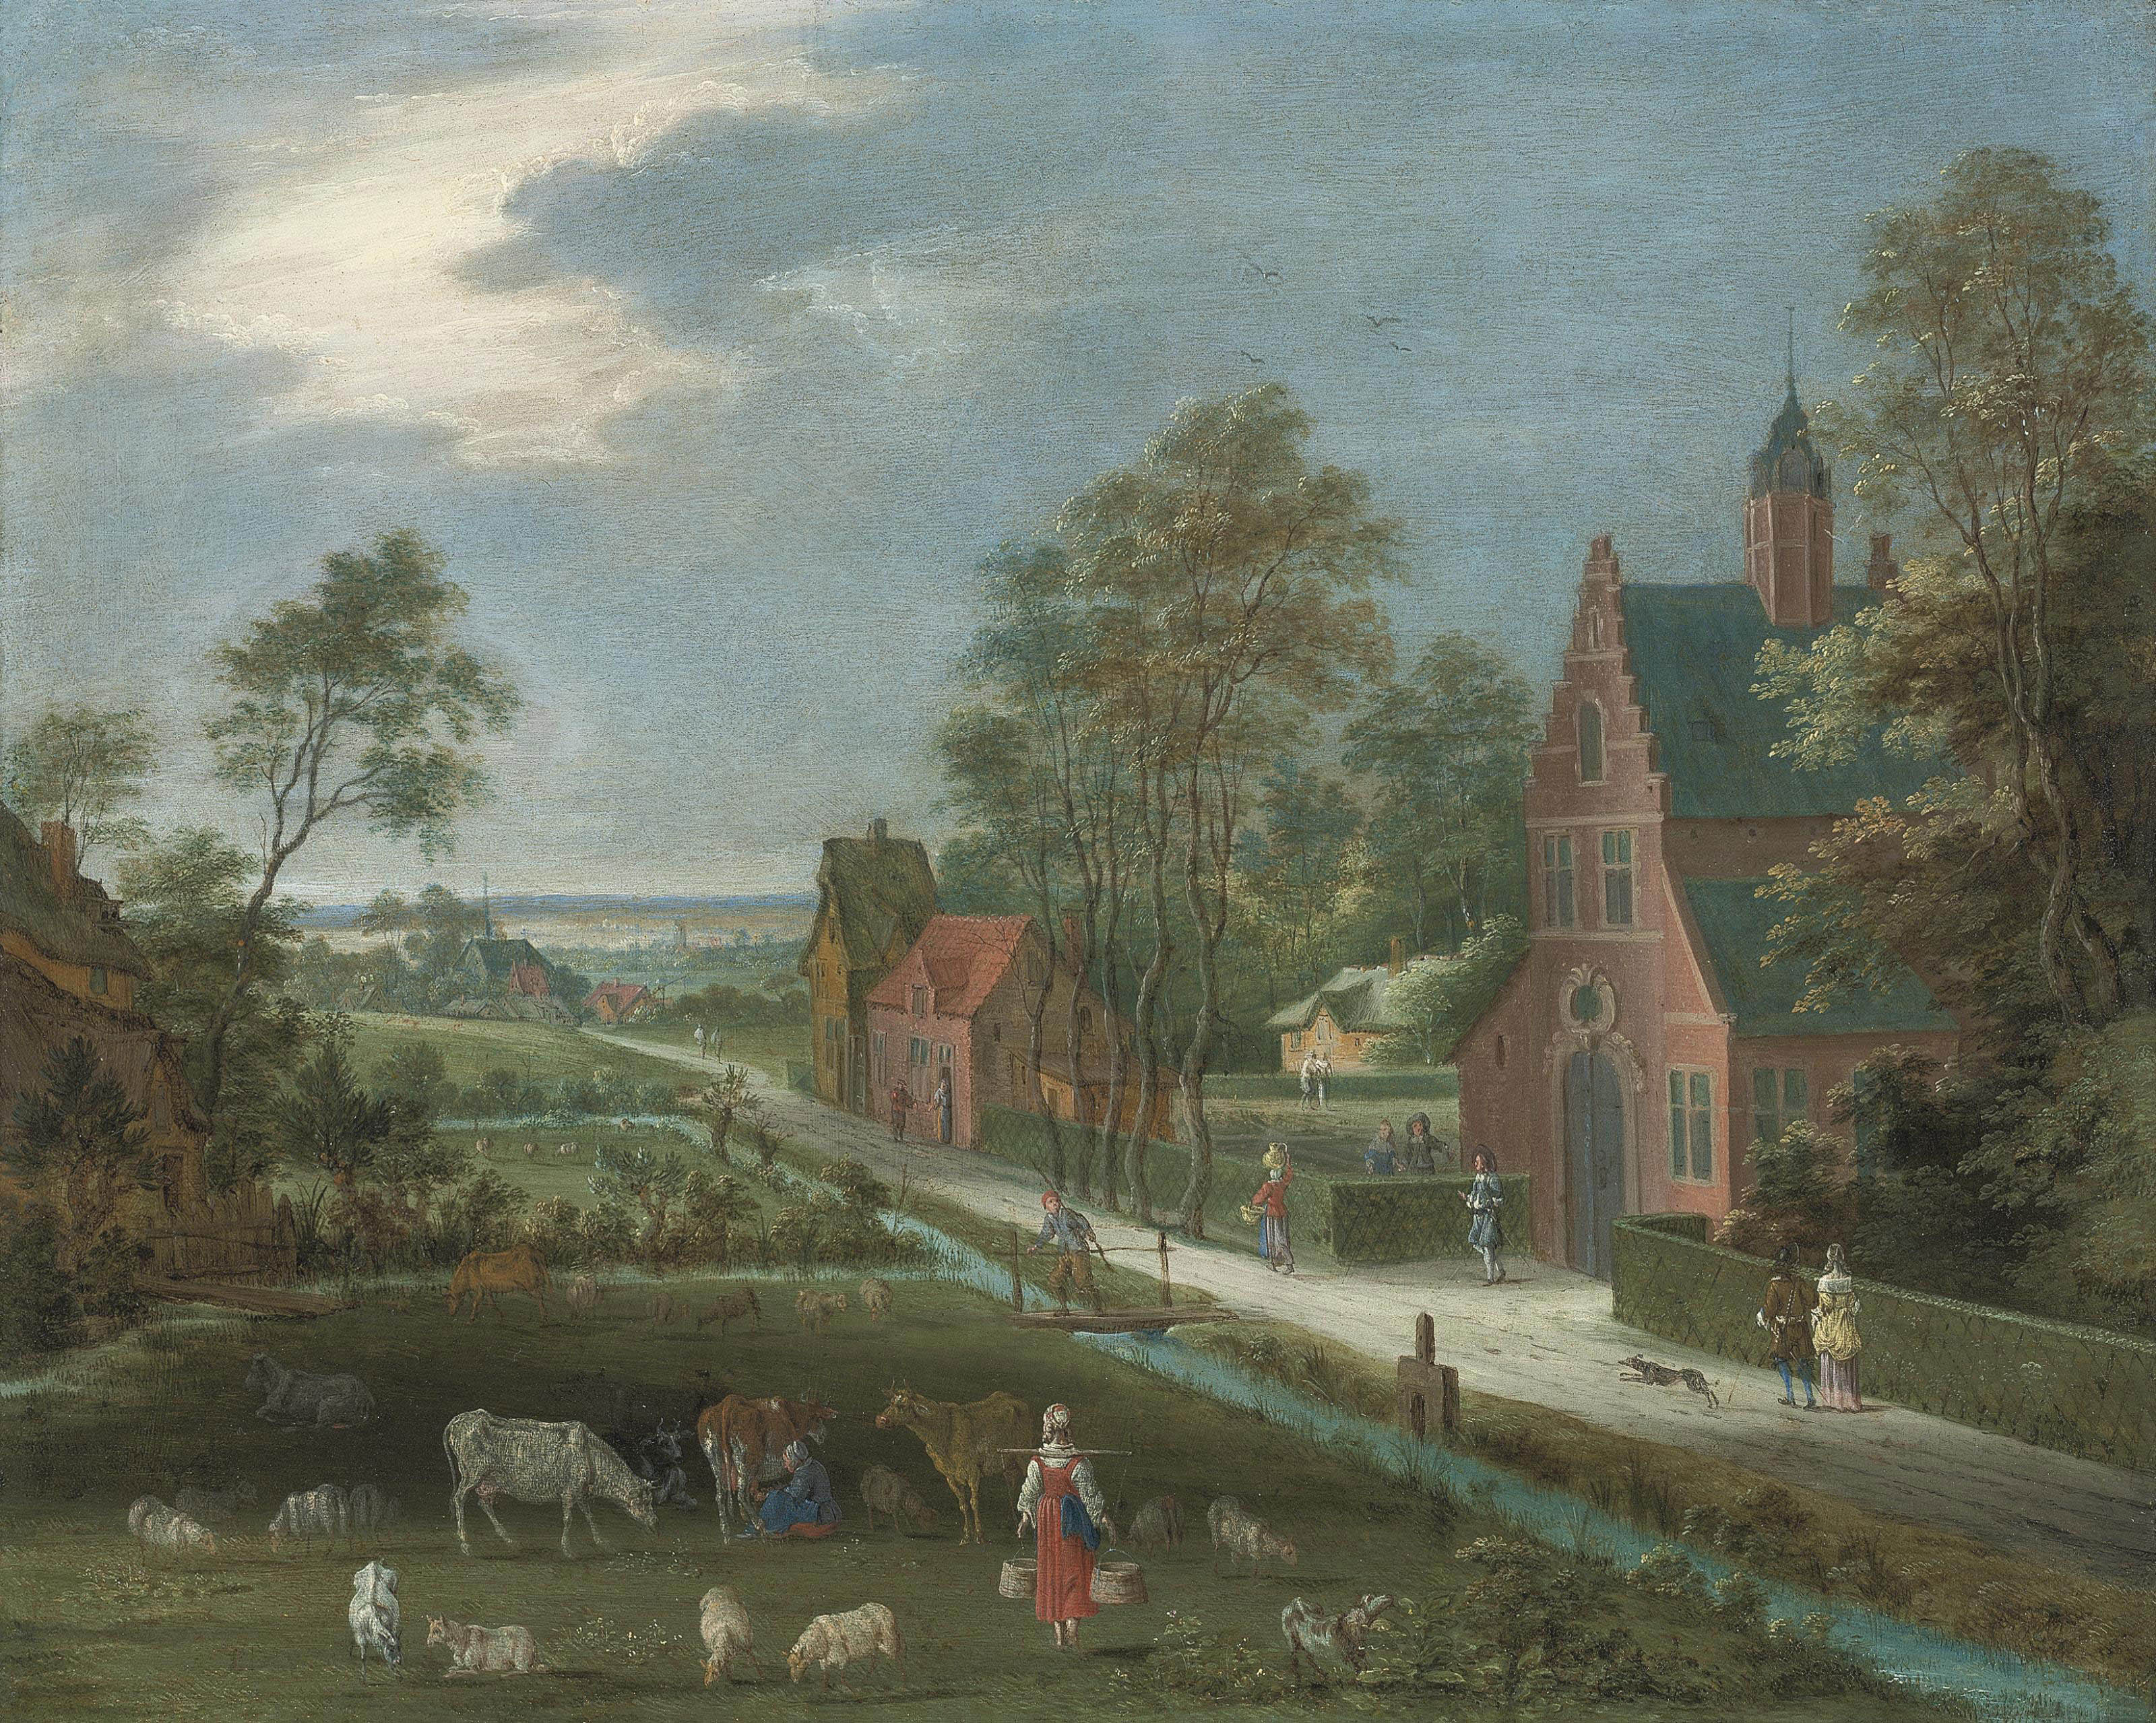 A village landscape with a milkmaid, cattle and other figures